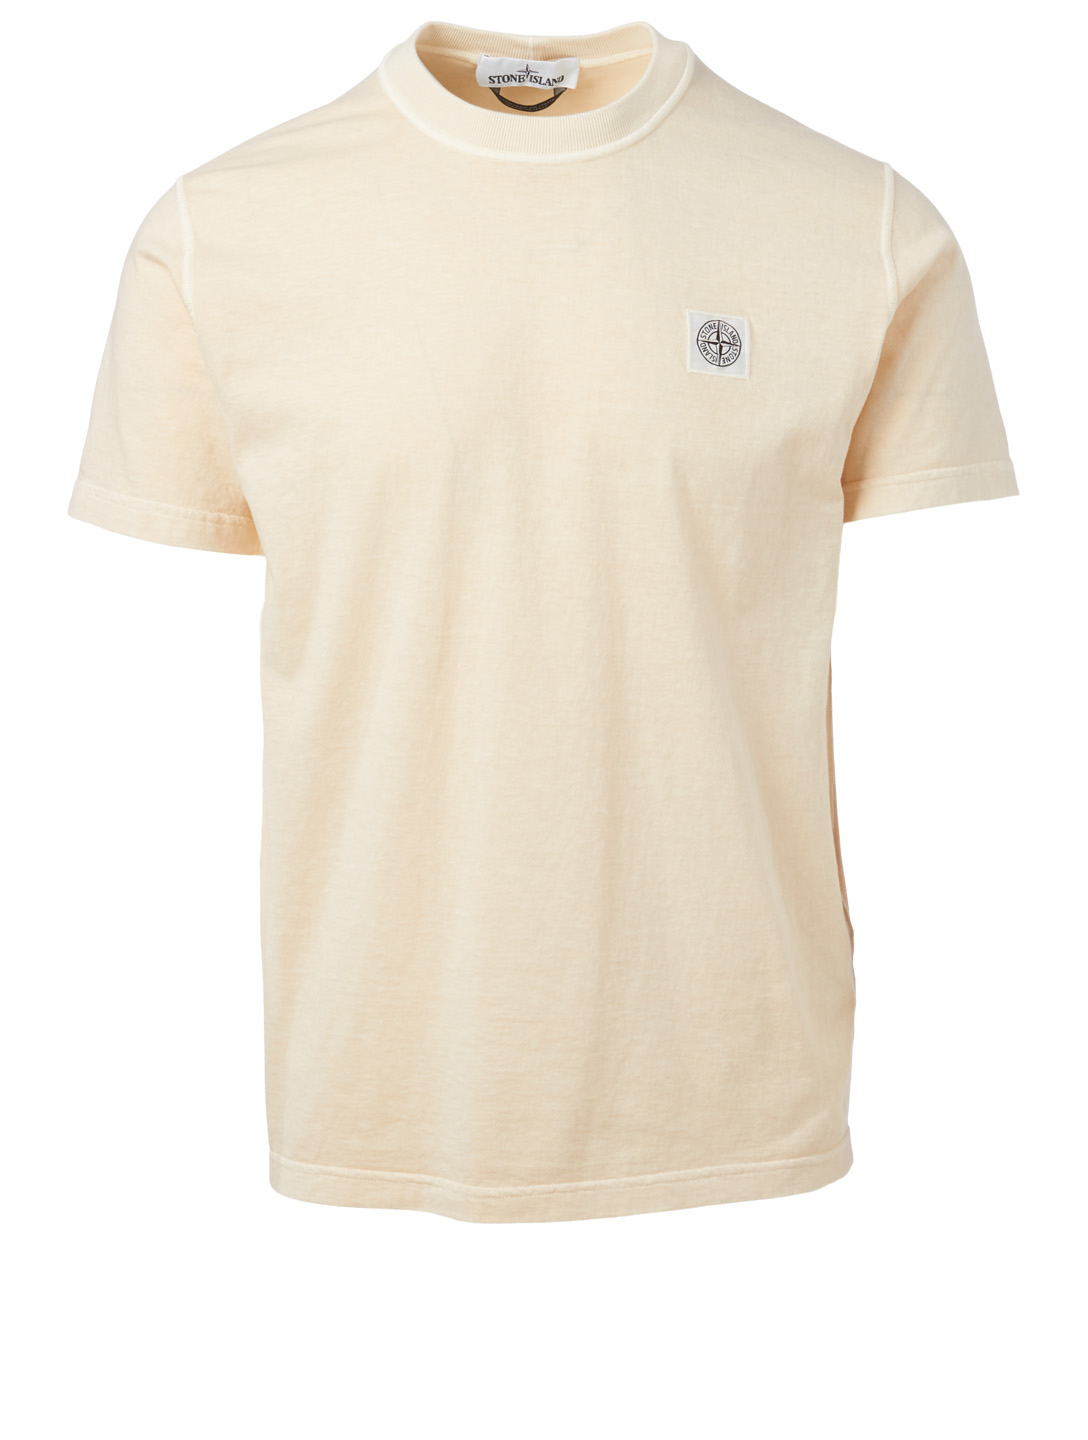 STONE ISLAND Cotton T-Shirt With Logo Patch Men's Beige